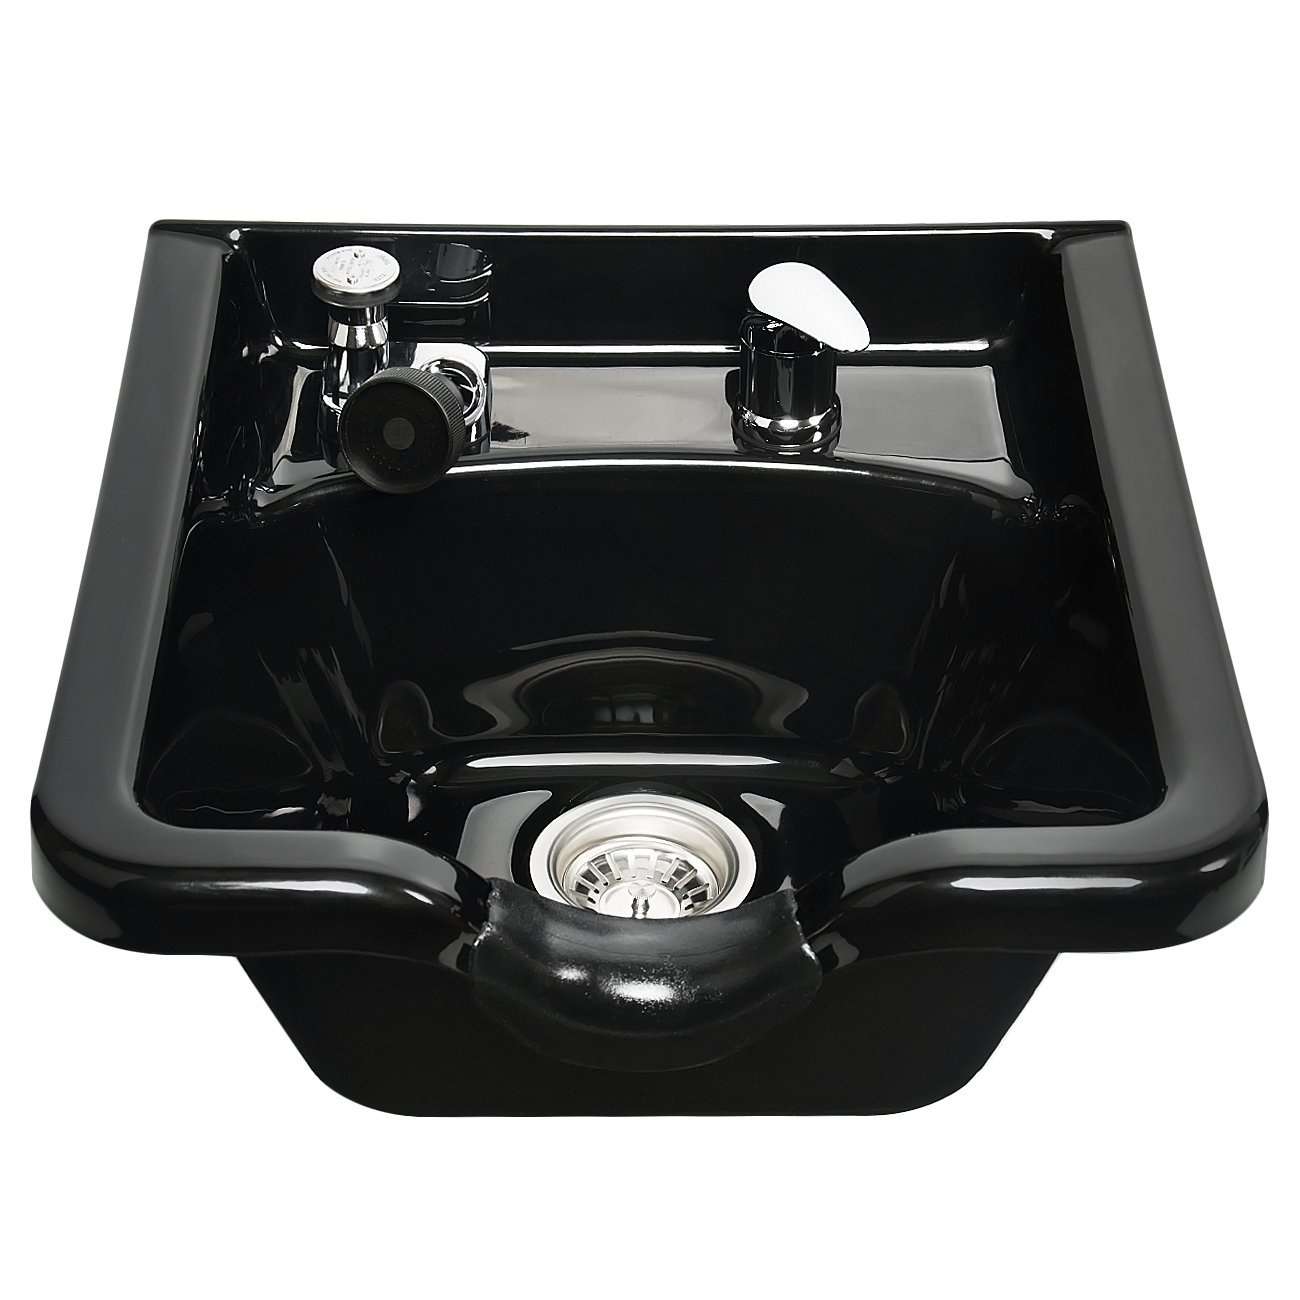 Stainless Drainage Accessories Shampoo Bowl Hair Sink Basin